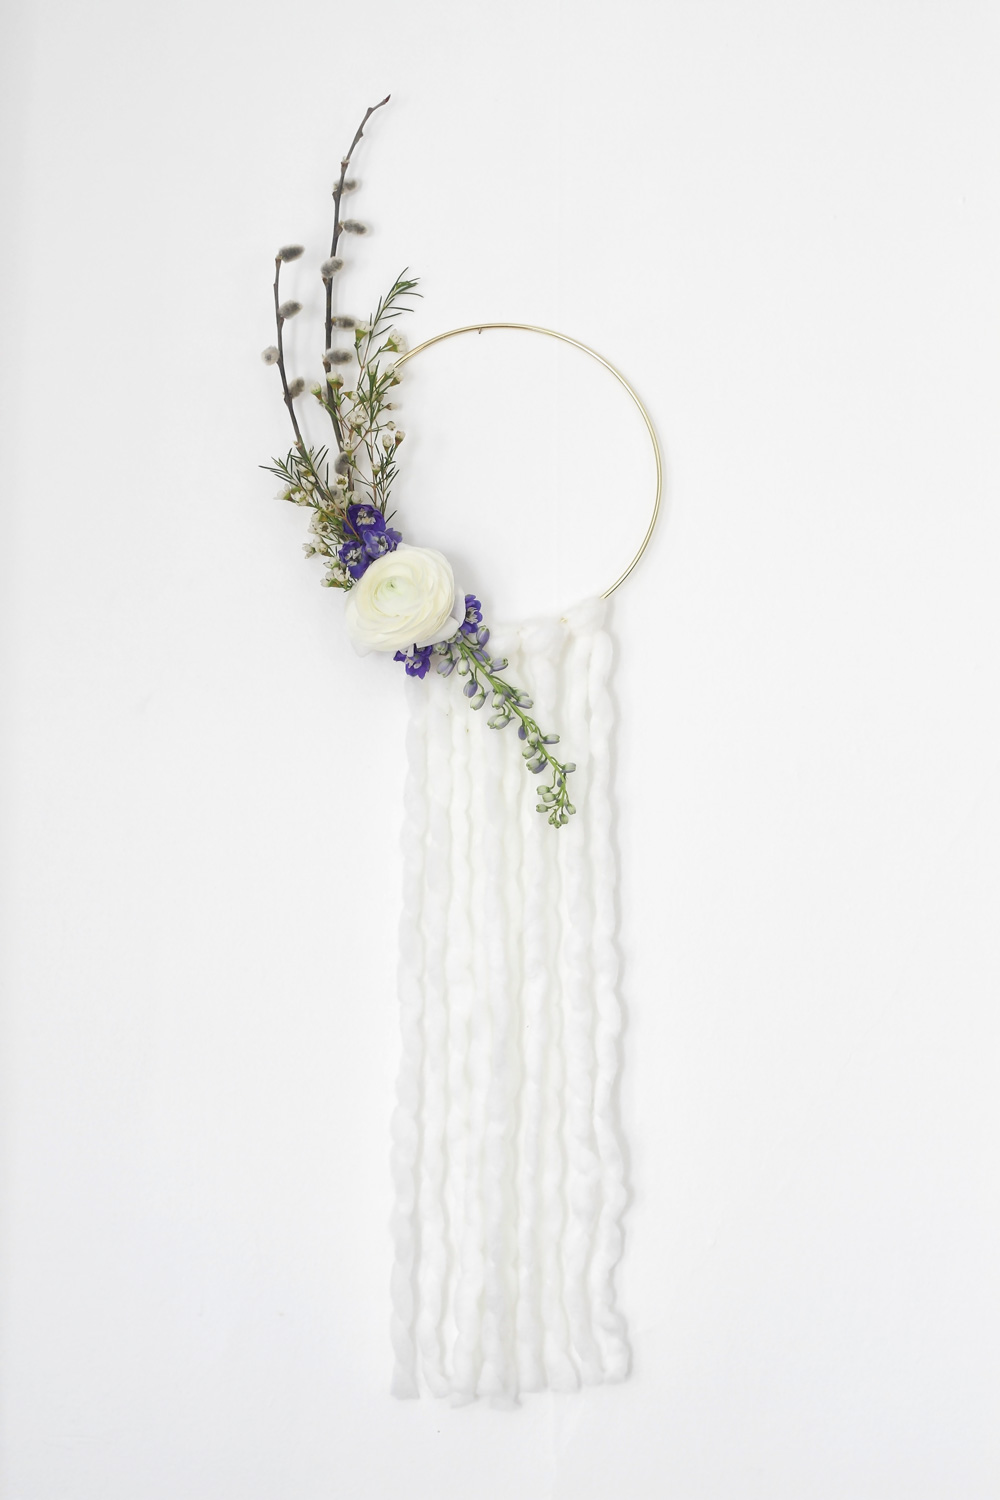 Modern Spring Wreath - Idle Hands Awake